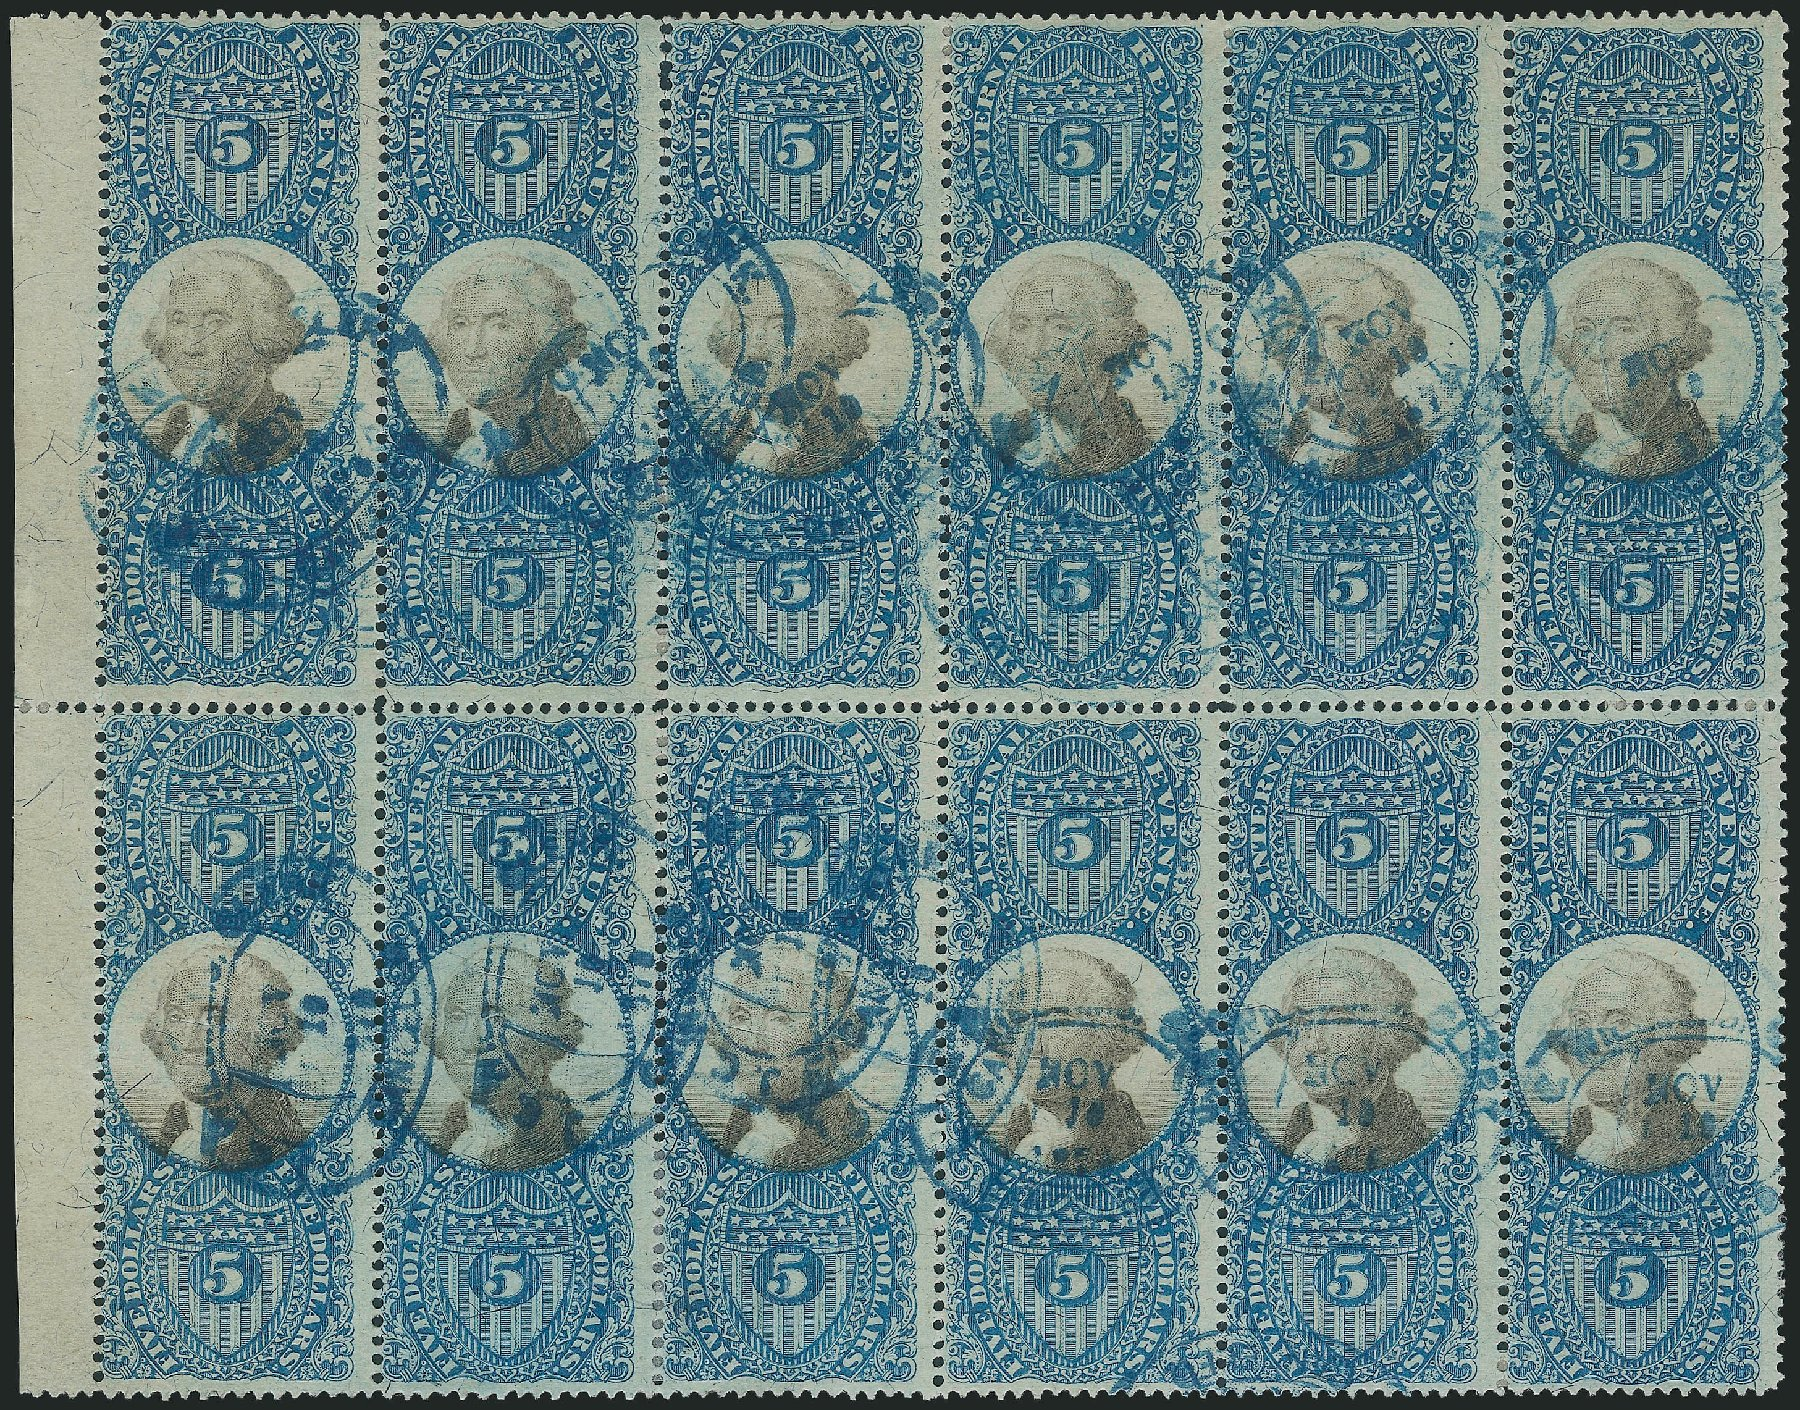 US Stamp Value Scott Catalog R127: US$5.00 1871 Revenue Documentary . Robert Siegel Auction Galleries, Dec 2014, Sale 1089, Lot 503